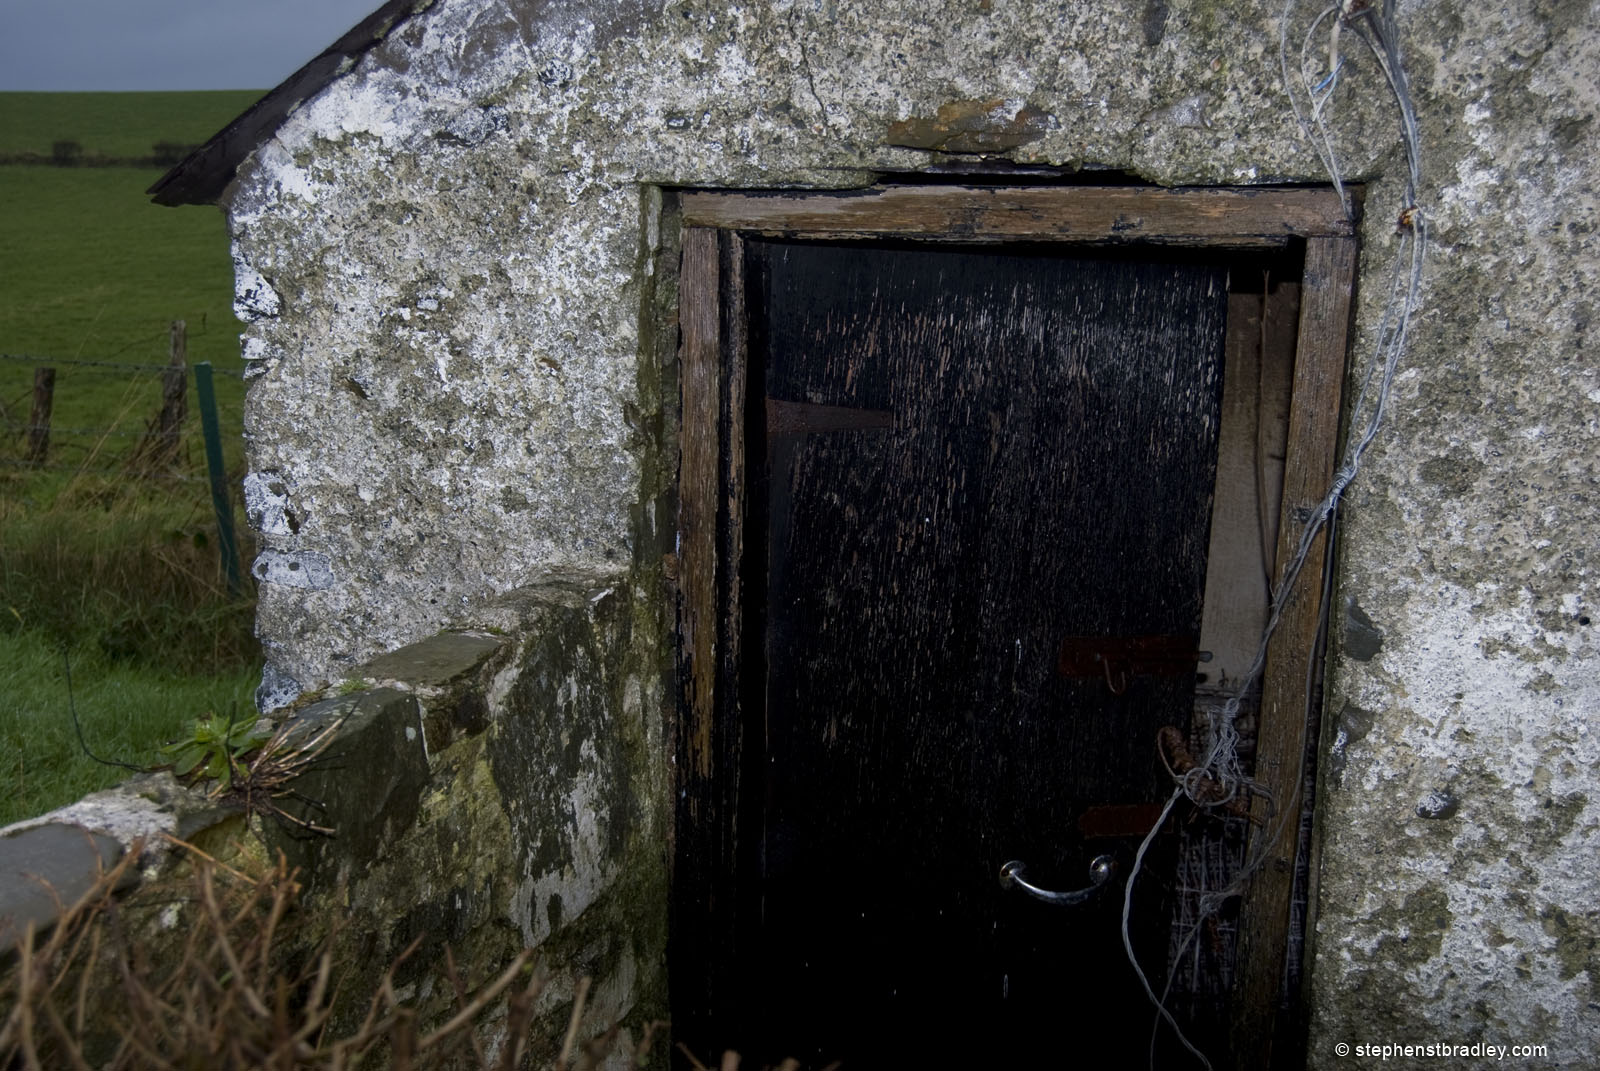 Landscape photograph of old Irish cottage shed near Strangford, Northern Ireland by Stephen Bradley photographer, Dublin, Ireland - photograph 0889.